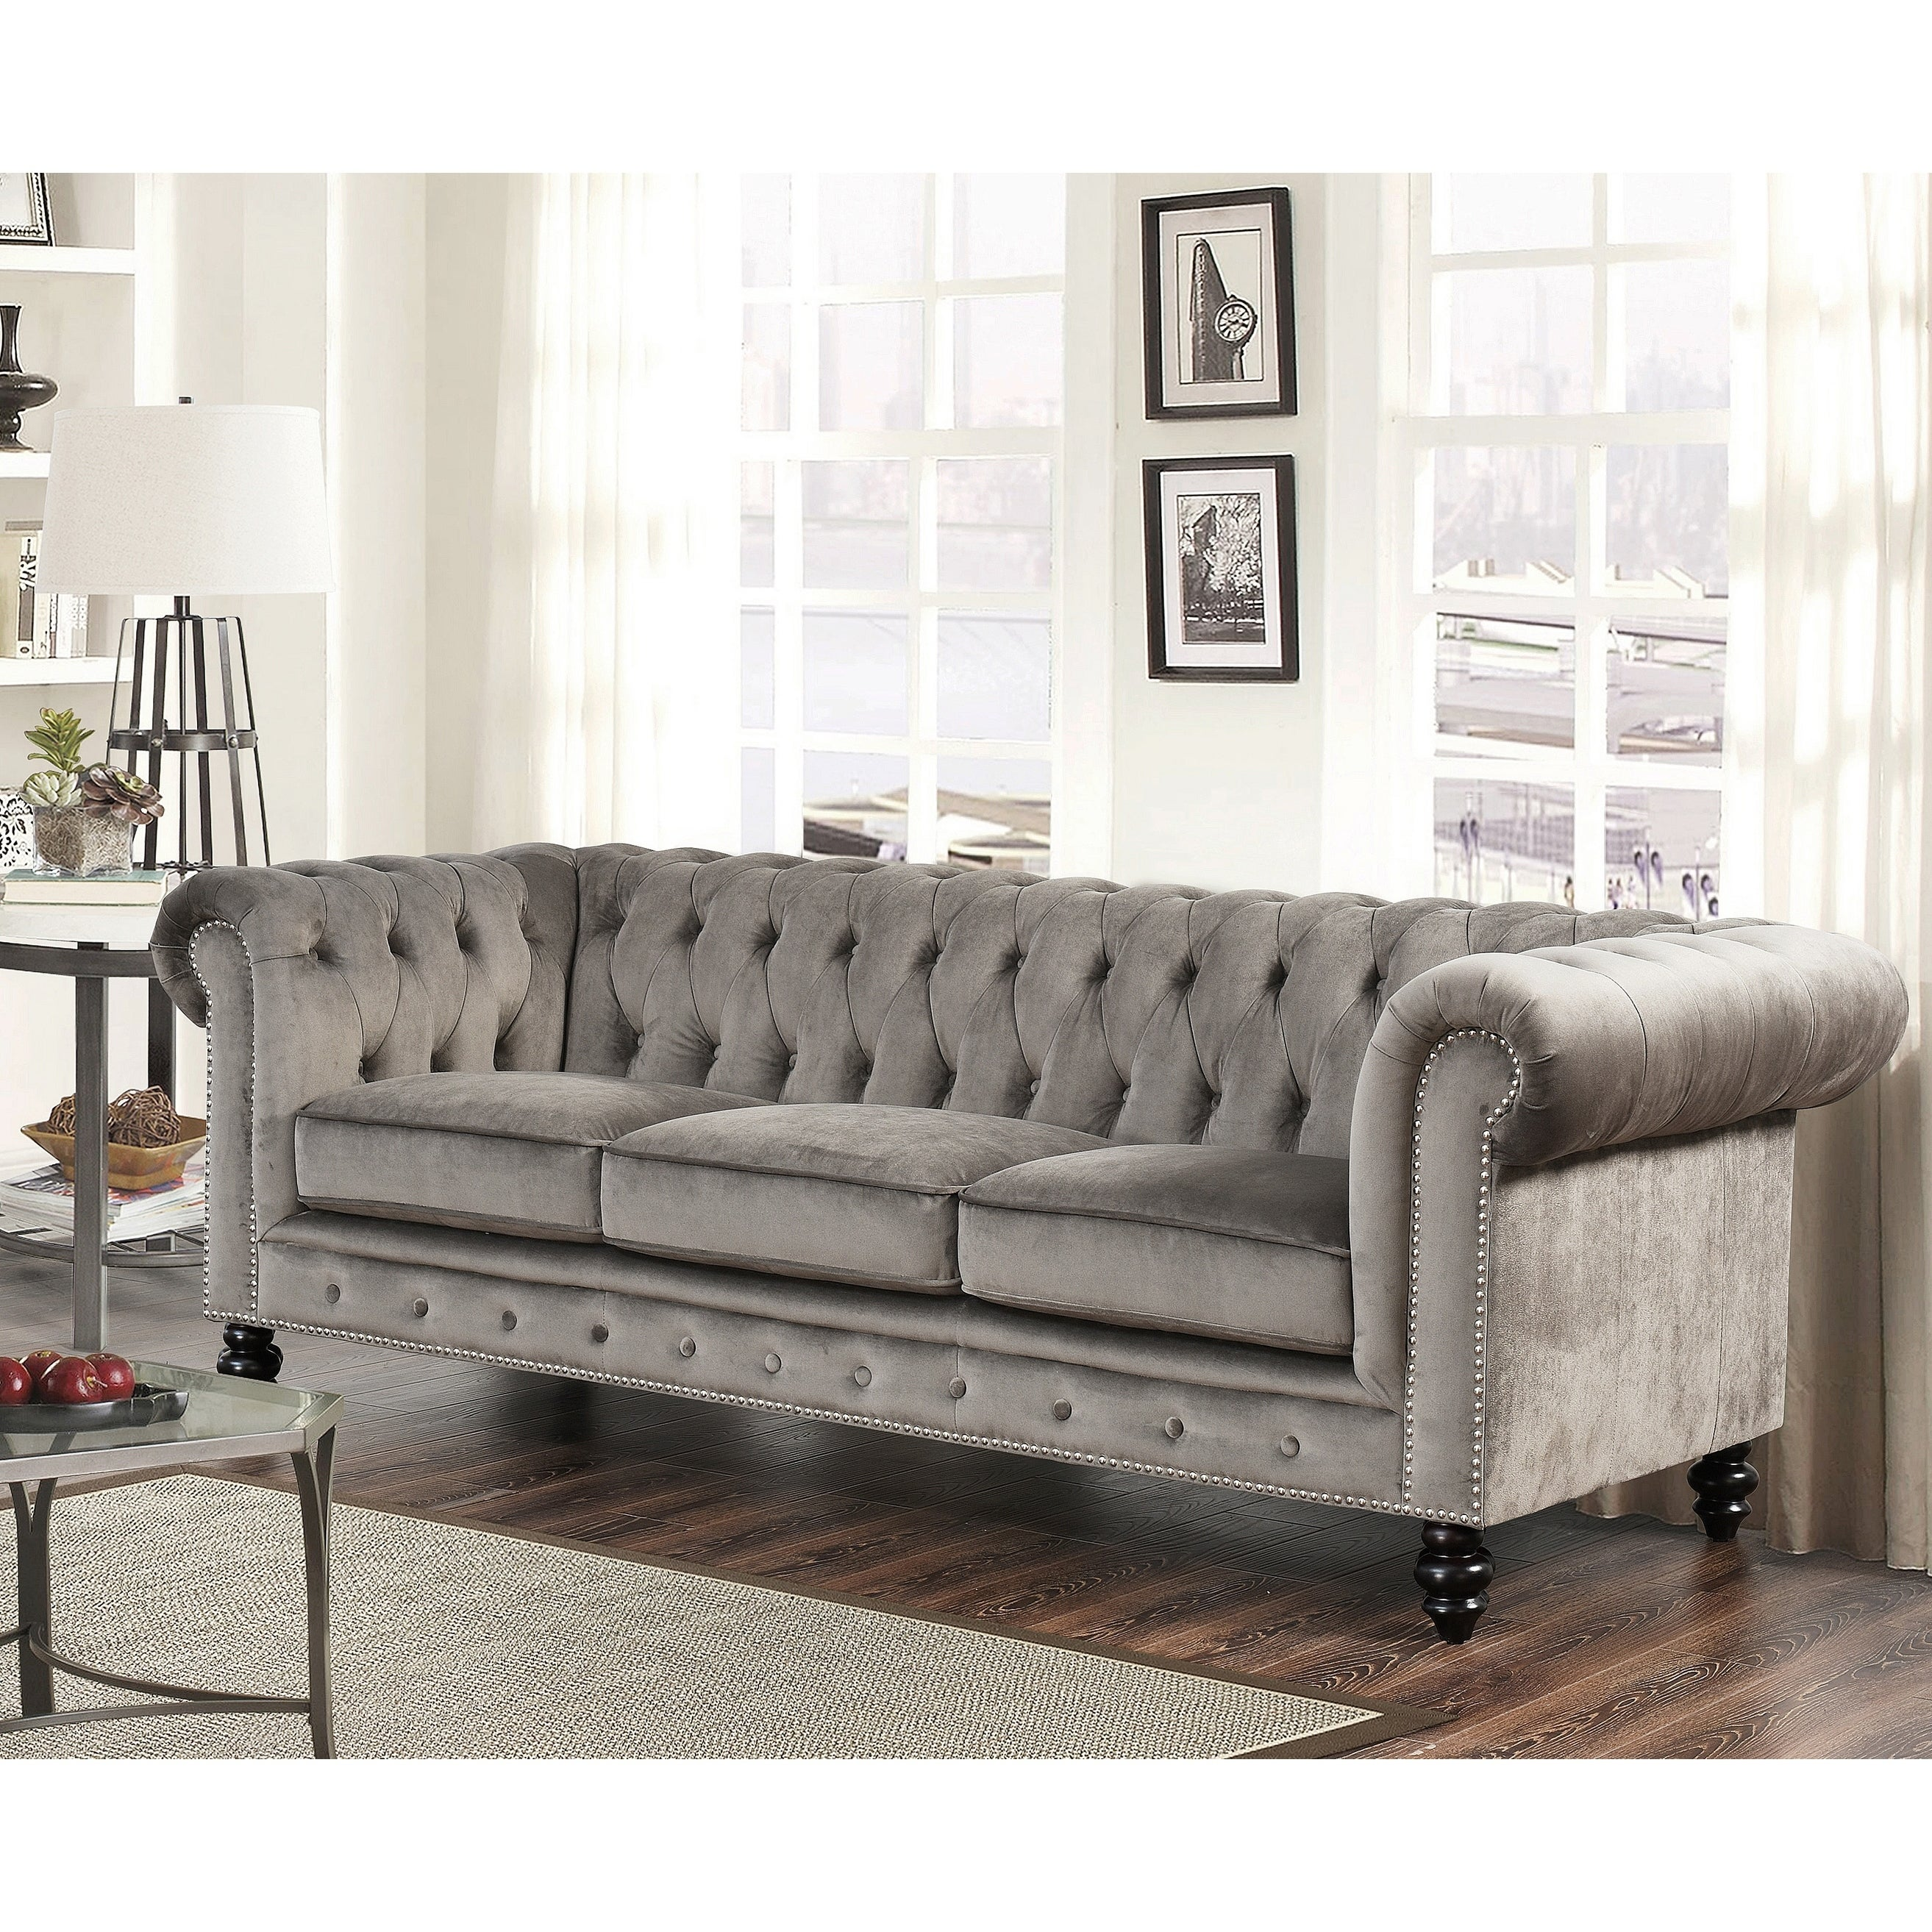 Gracewood Hollow Dib Velvet Sofa On Free Shipping Today 23122680